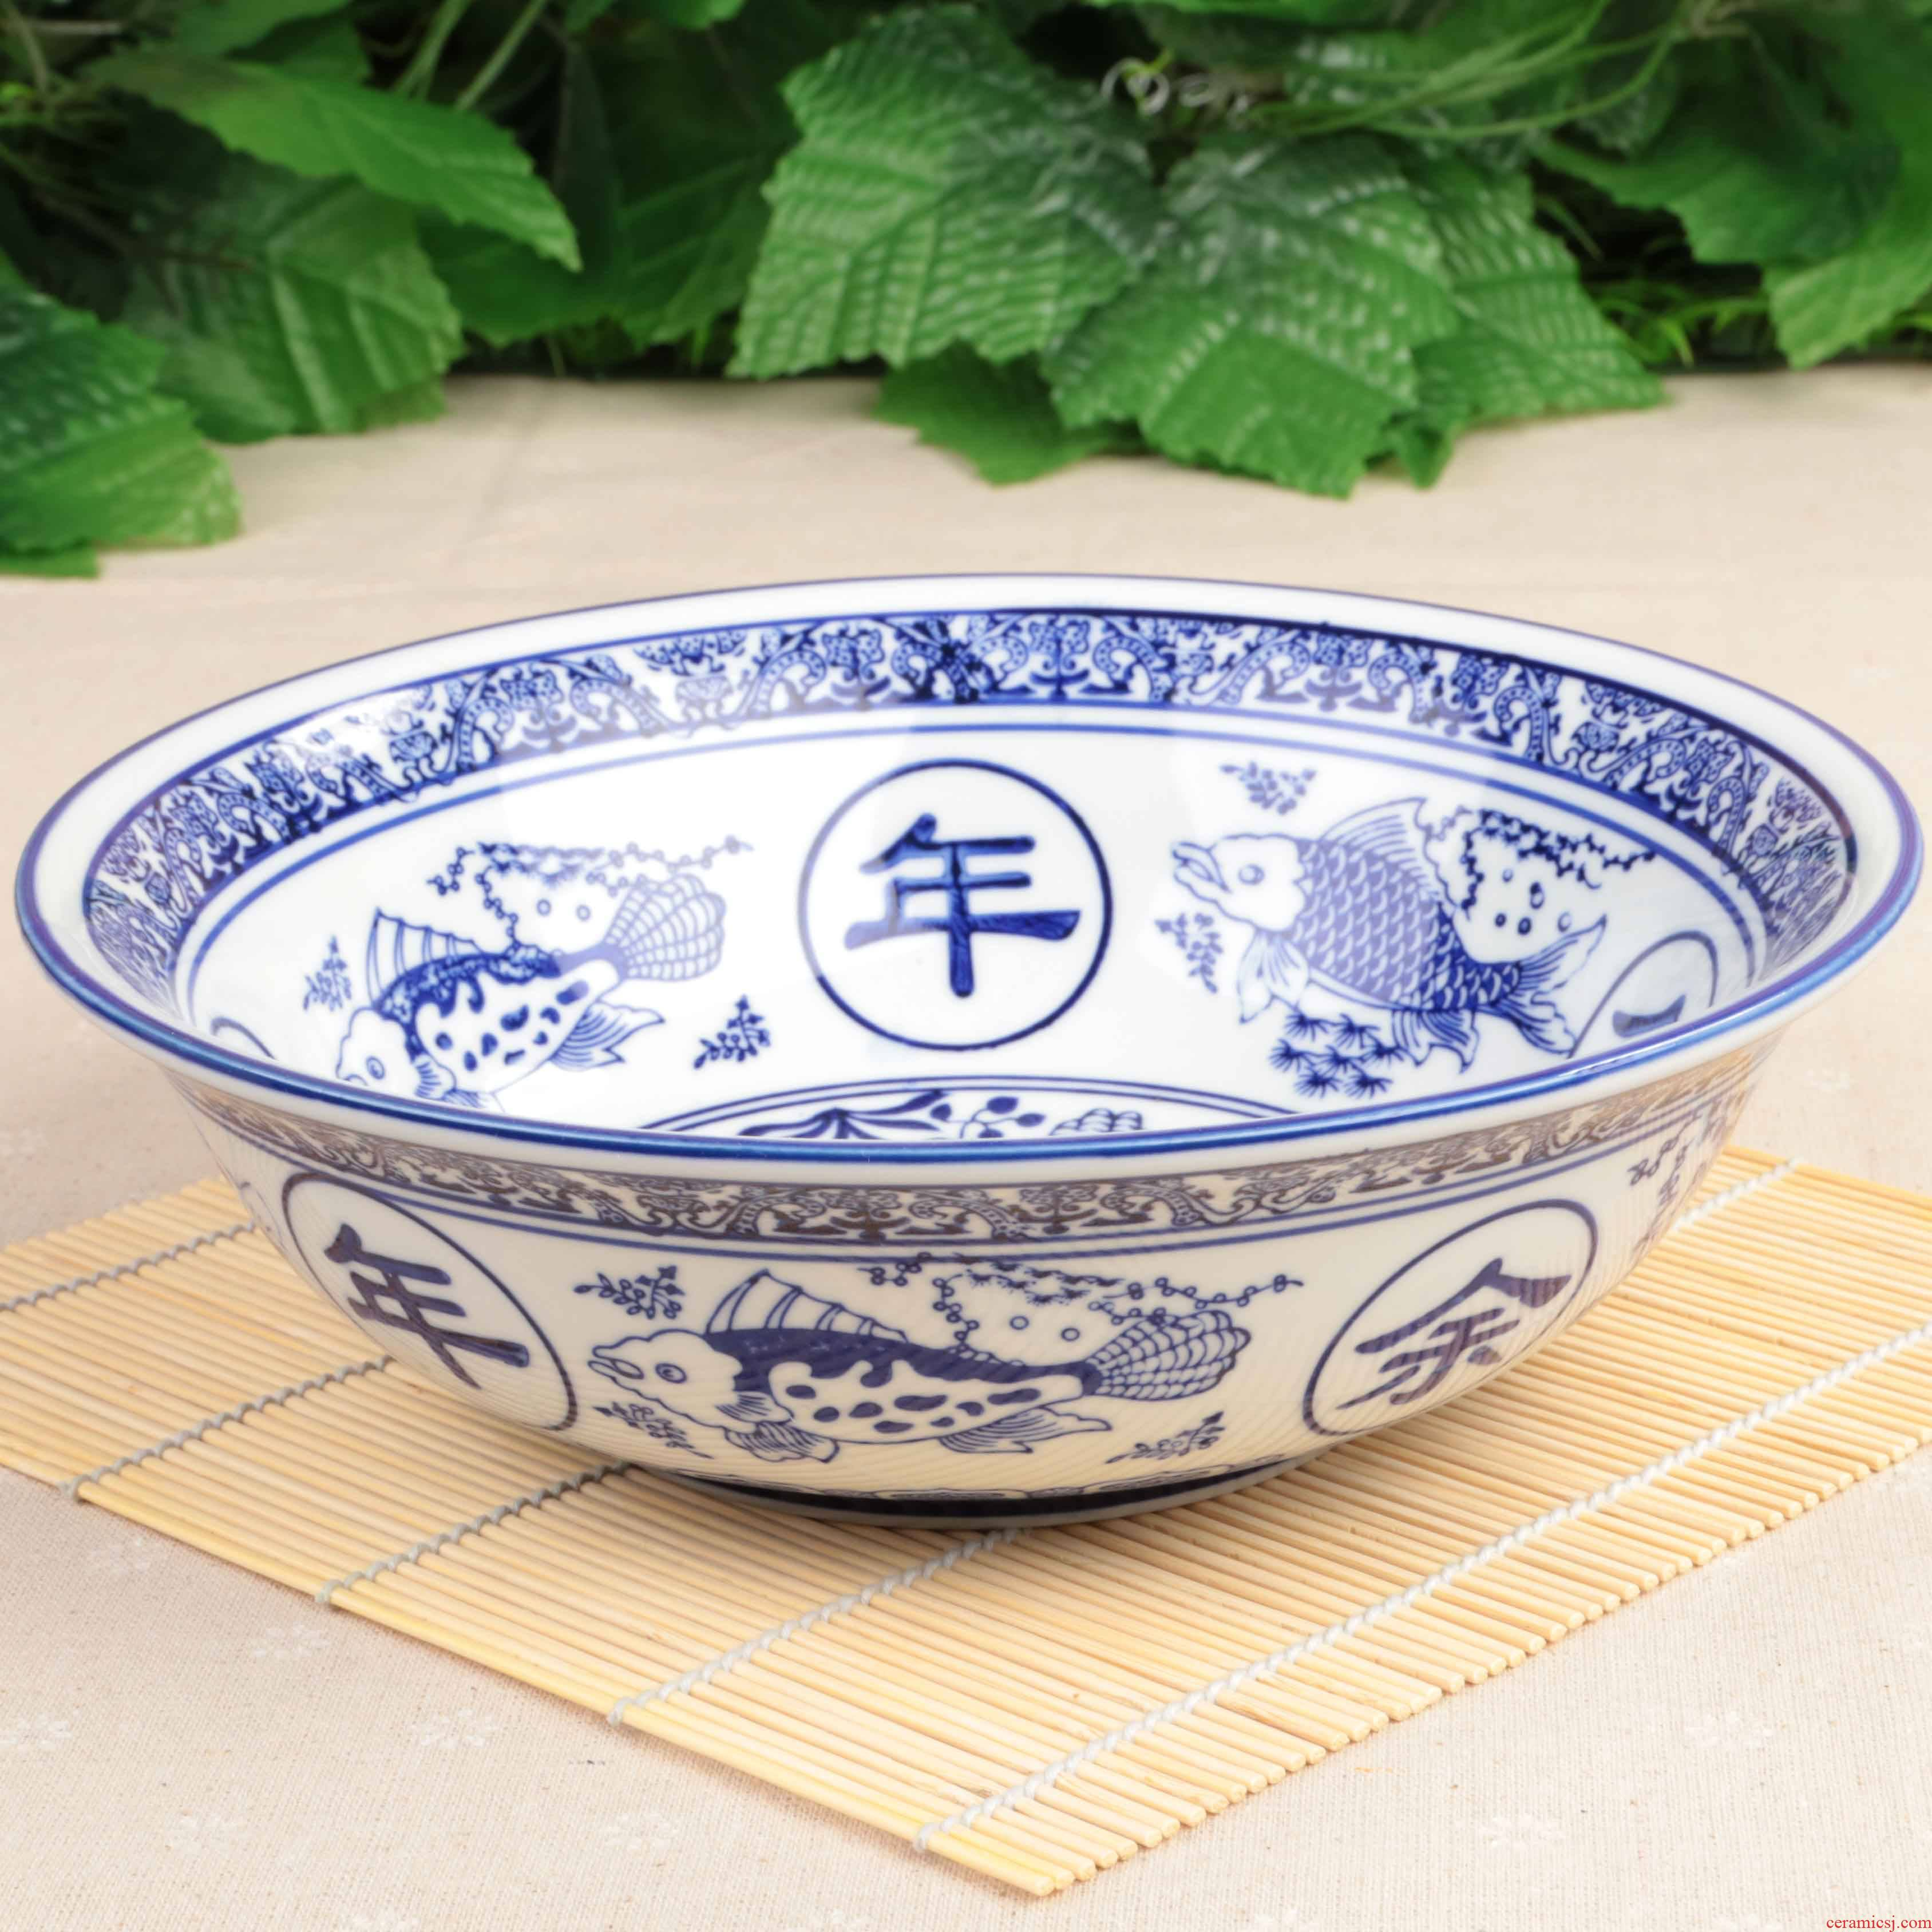 Blue and white ceramic packages mailed excessive penetration large bowl of boiled fish pickled fish meat boiled fish bowl bowl bathtub cubicle poon choi large bowl